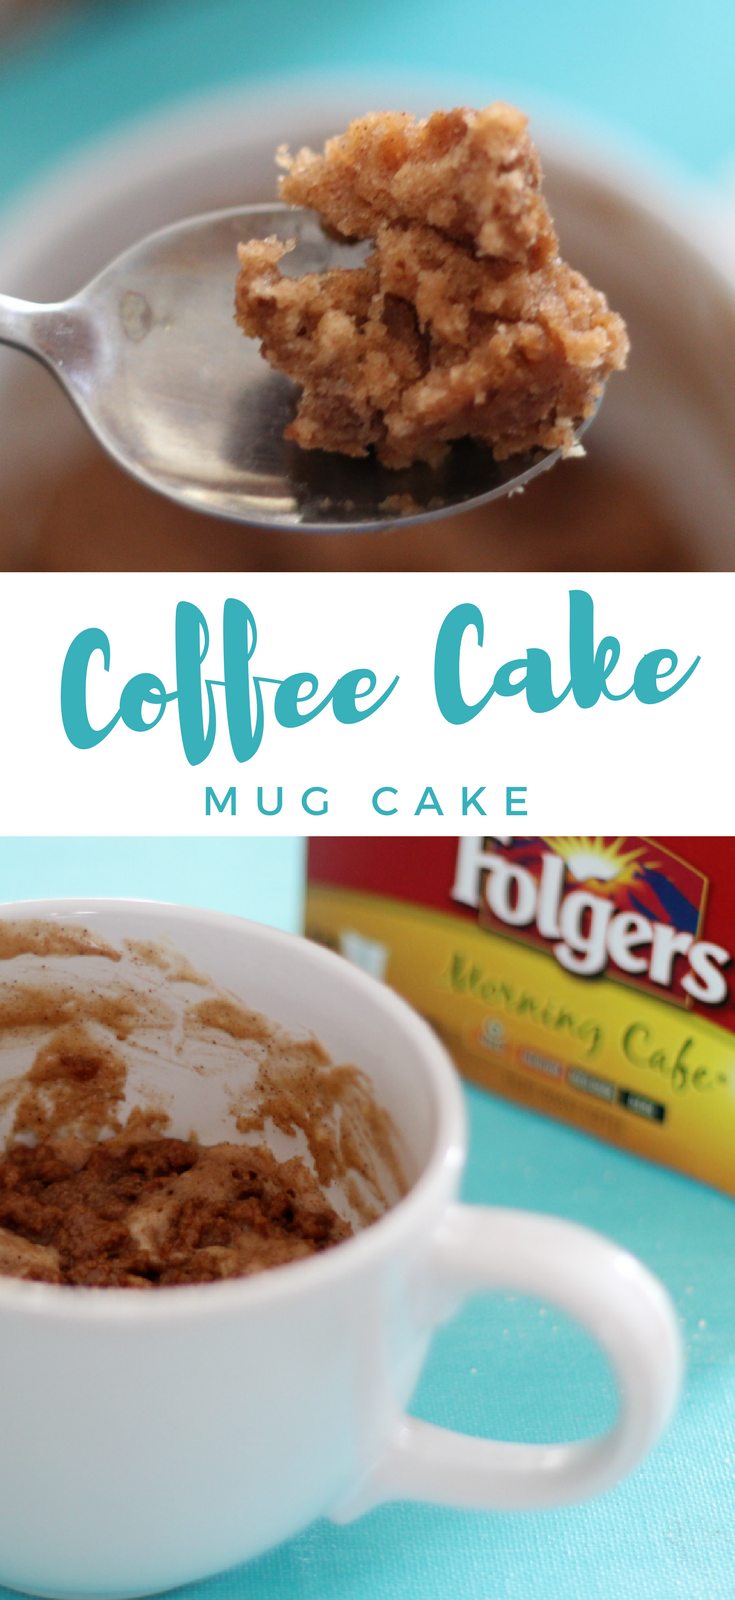 Coffee Cake Mug Cake Recipe Mug cake, Coffee cake